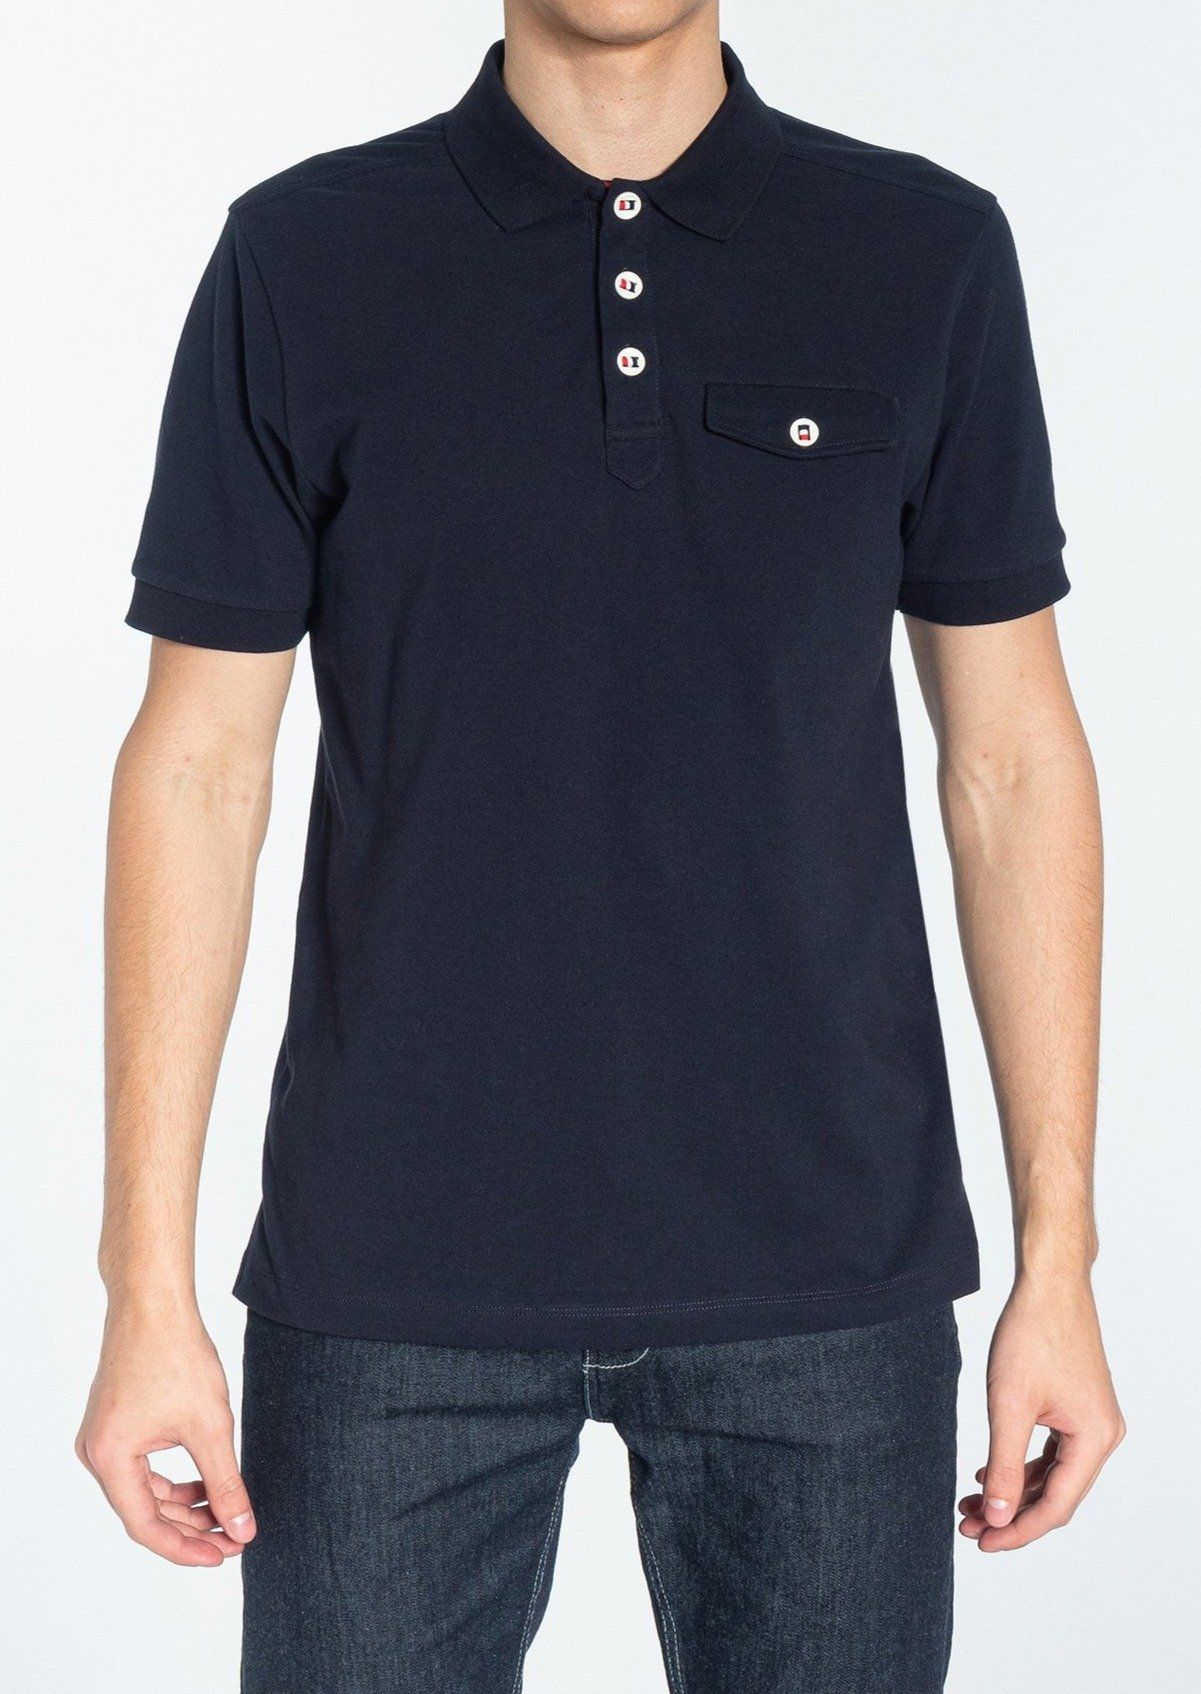 Beelsby Navy Polo Shirt XL